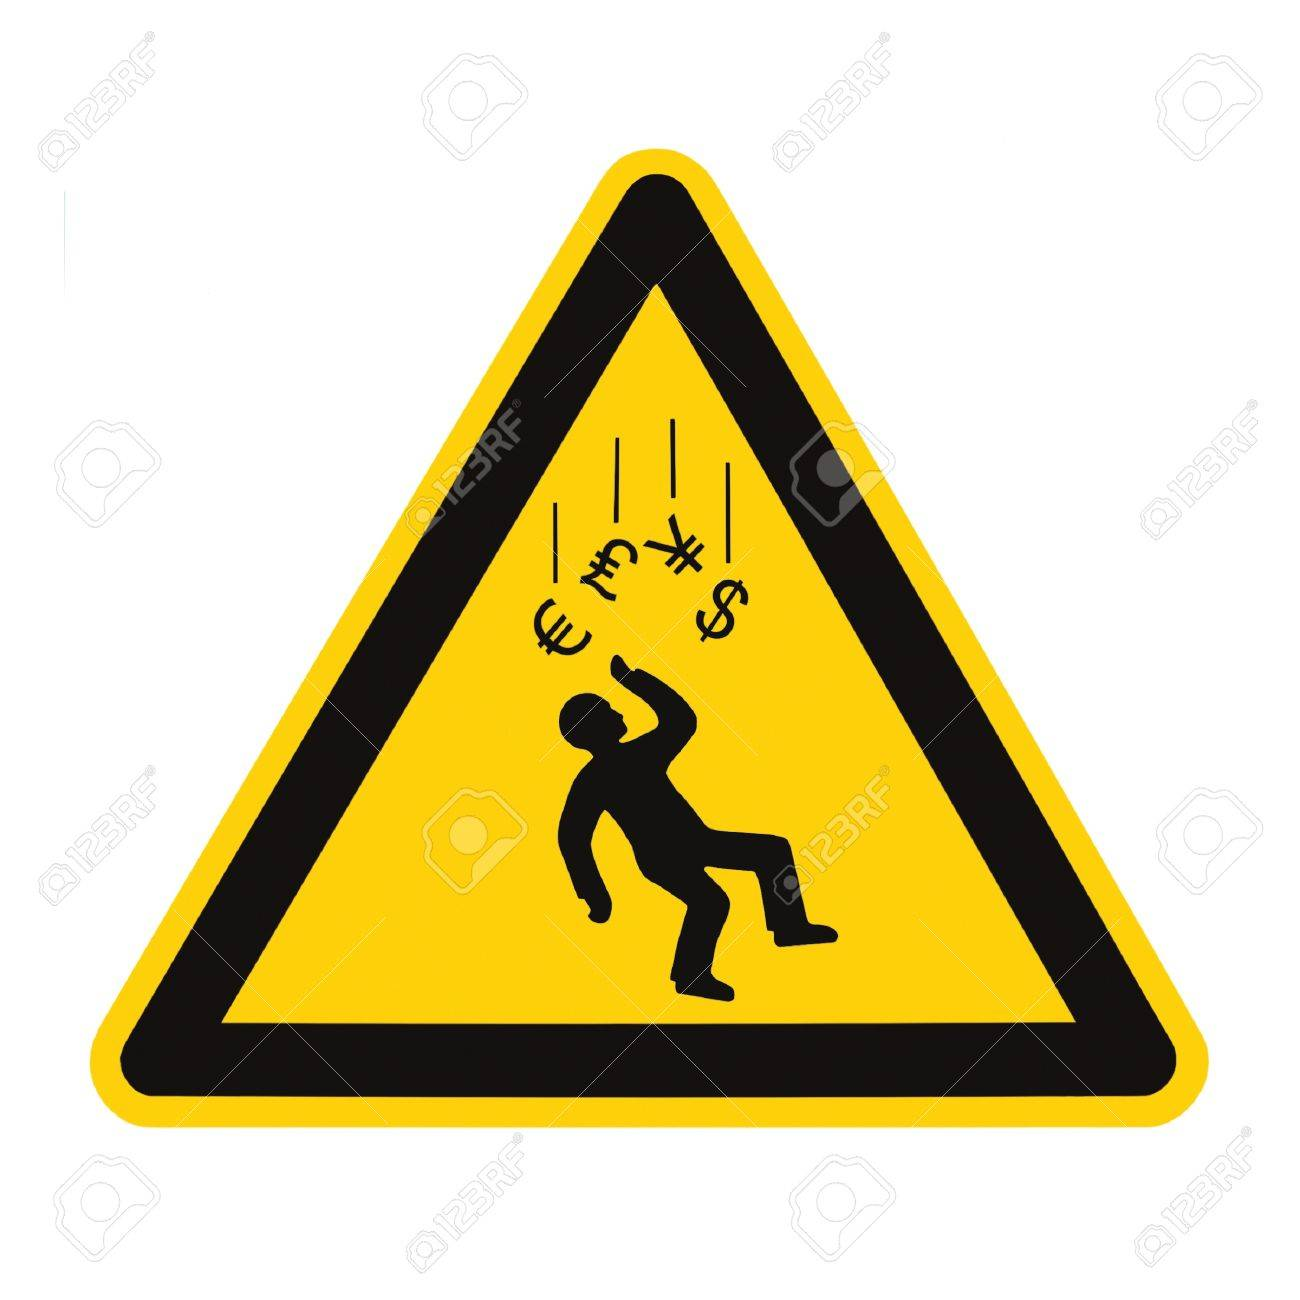 Danger Falling Currencies Objects Warning Sign Concept Isolated, black drop triangle over yellow, large macro, US Dollar, EU Euro, British Pound, Japanese Yen Currency Stock Photo - 12194499